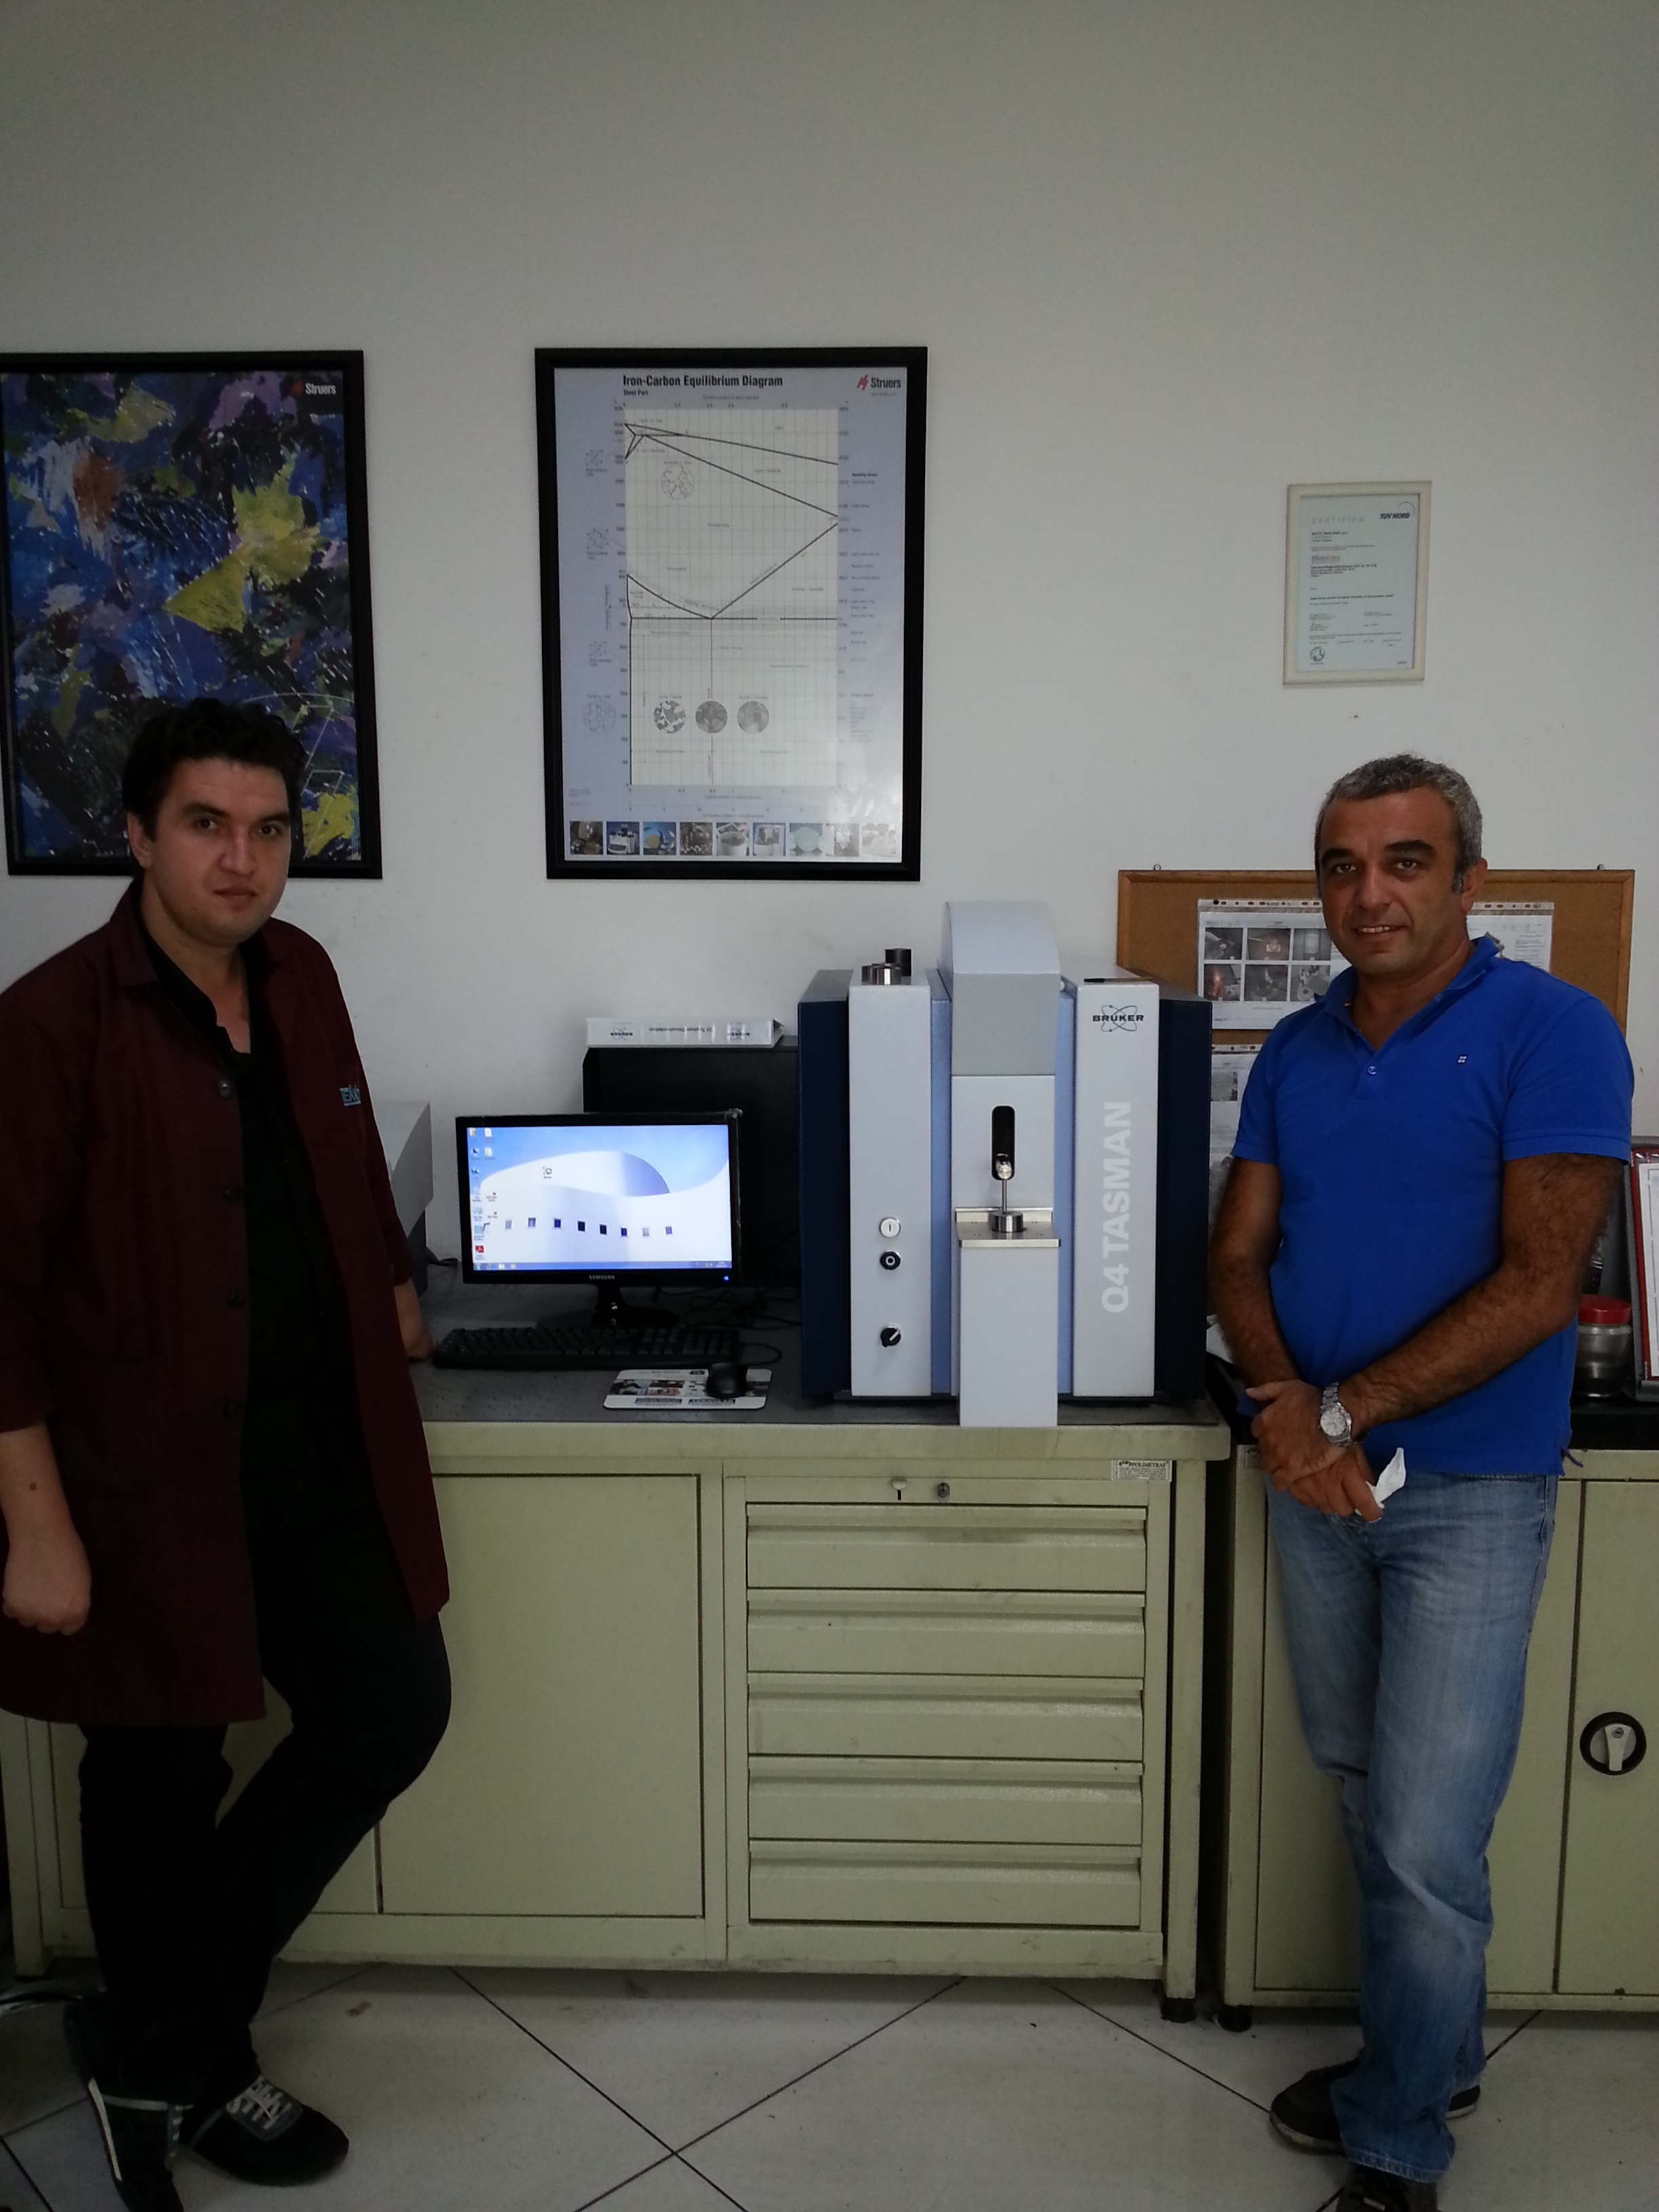 Q4 TASMAN 170 installation is completed in TEKNOFORM GmbH in Istanbul